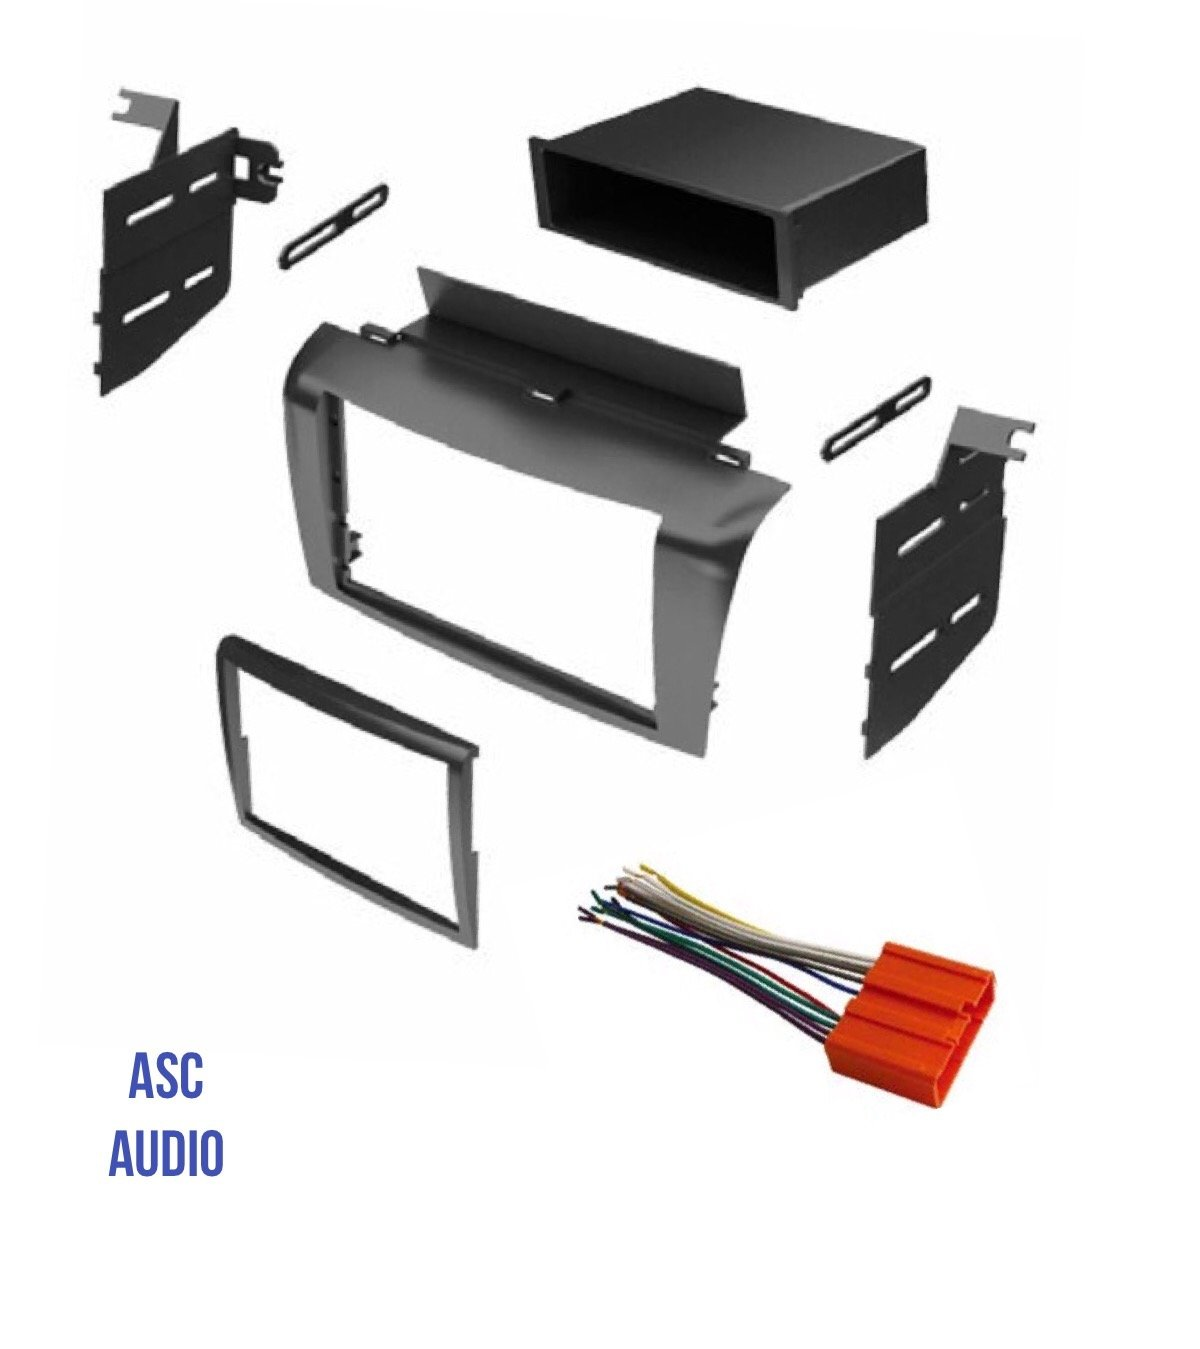 Cheap 2005 Mazda 3 Radio Find Deals On Line At Wiring Housing Asc Audio Car Stereo Install Dash Mount Kit And Wire Harness For Installing An Aftermarket